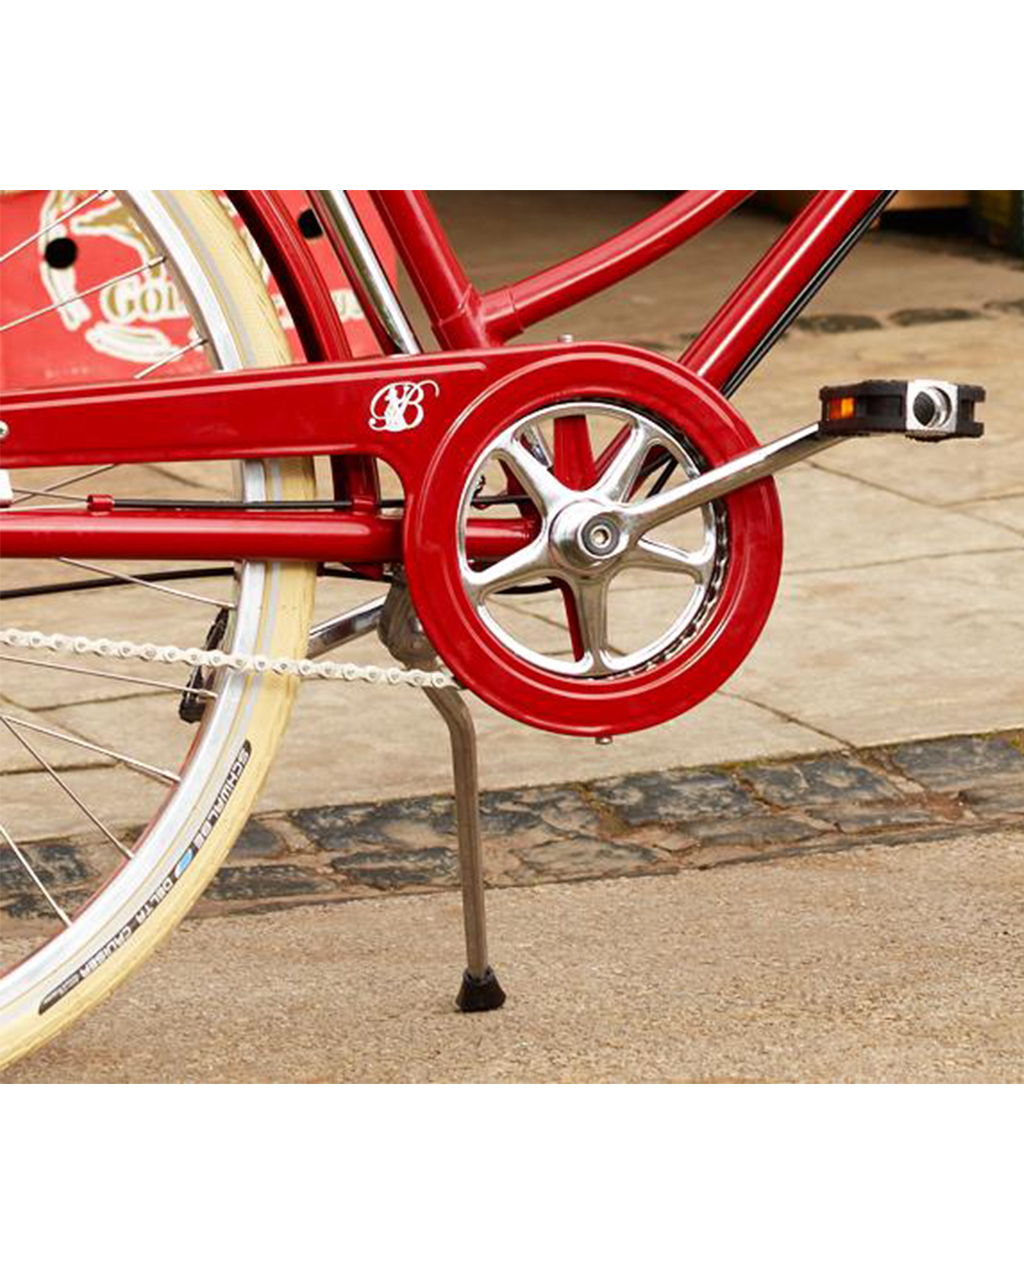 Pashley Classic Propstand